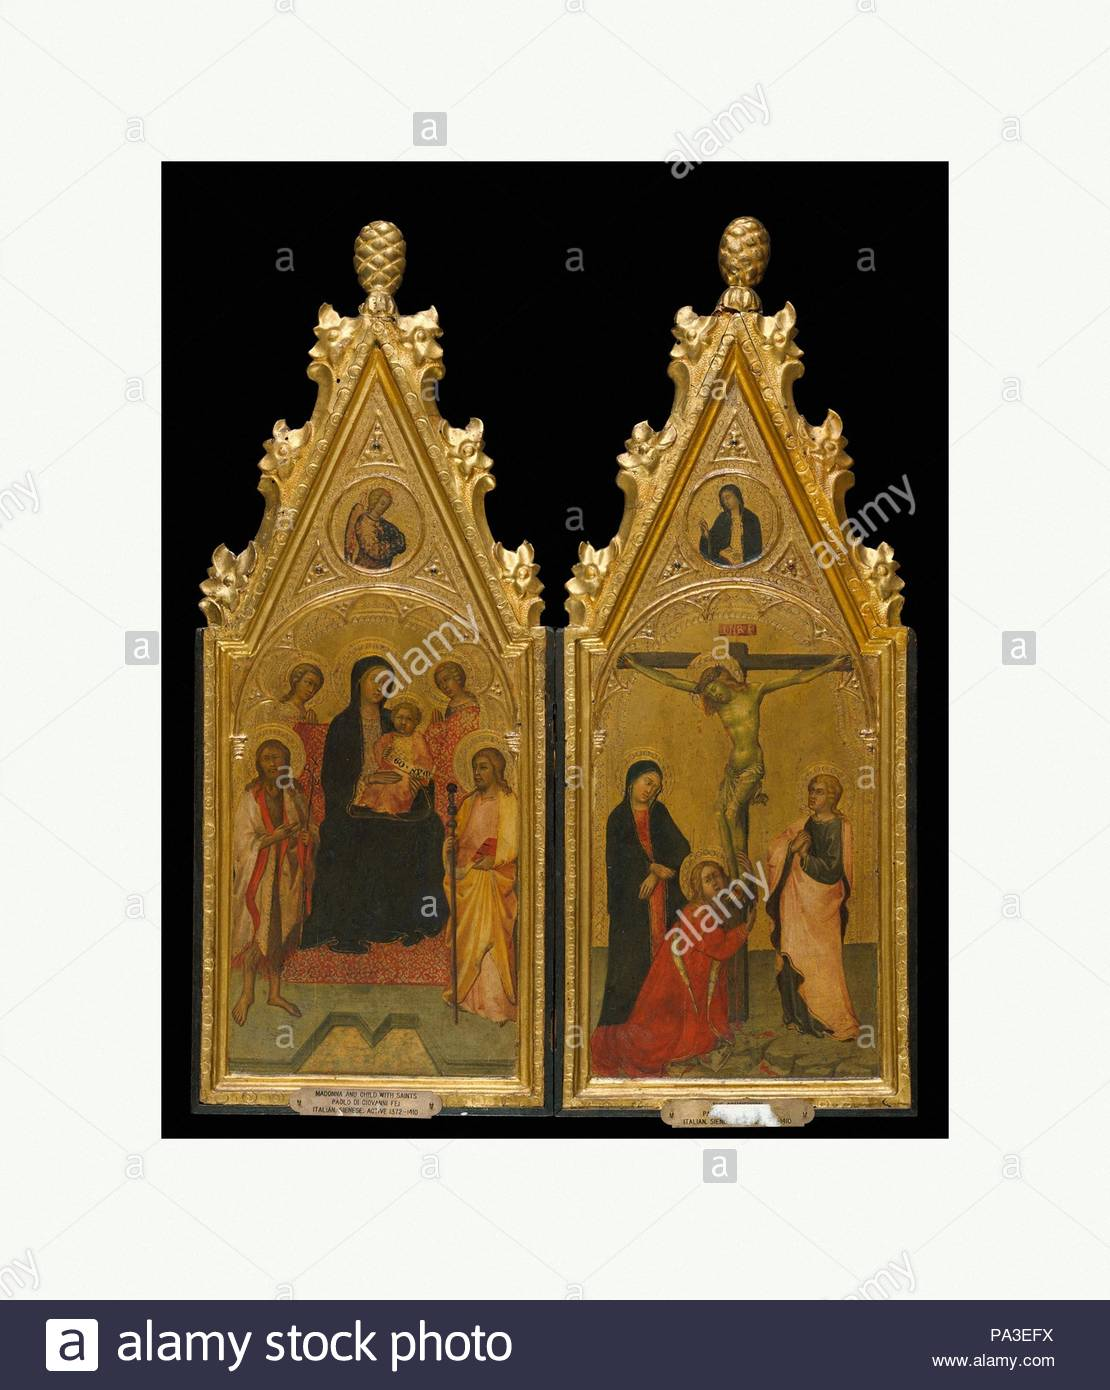 Diptych with tabernacle frames, ca. 1400–1410, Sienese, Poplar. Carved, gilt; red-orange bole., Overall, left, 46.5 x 19.8 cm, right, 46.9 x 19.6 cm; sight, both 40.6 x 16.5 cm; engaged., Frames, The gable ornament on this diptych by Paolo di Giovanni Fei, with paterae that have been regessoed, regilt, and repunched, appears to be too bold for the paitnigns: a 'Madonna and Child Enthroned with Two Angels, Saints James the Great and John the Baptist, and the Annunciatory Angel' (left wing) and a 'Crucified Christ with the Virgin, Saint Mary Magdelene, Saint John the Evangelist, and the Virgin A - Stock Image